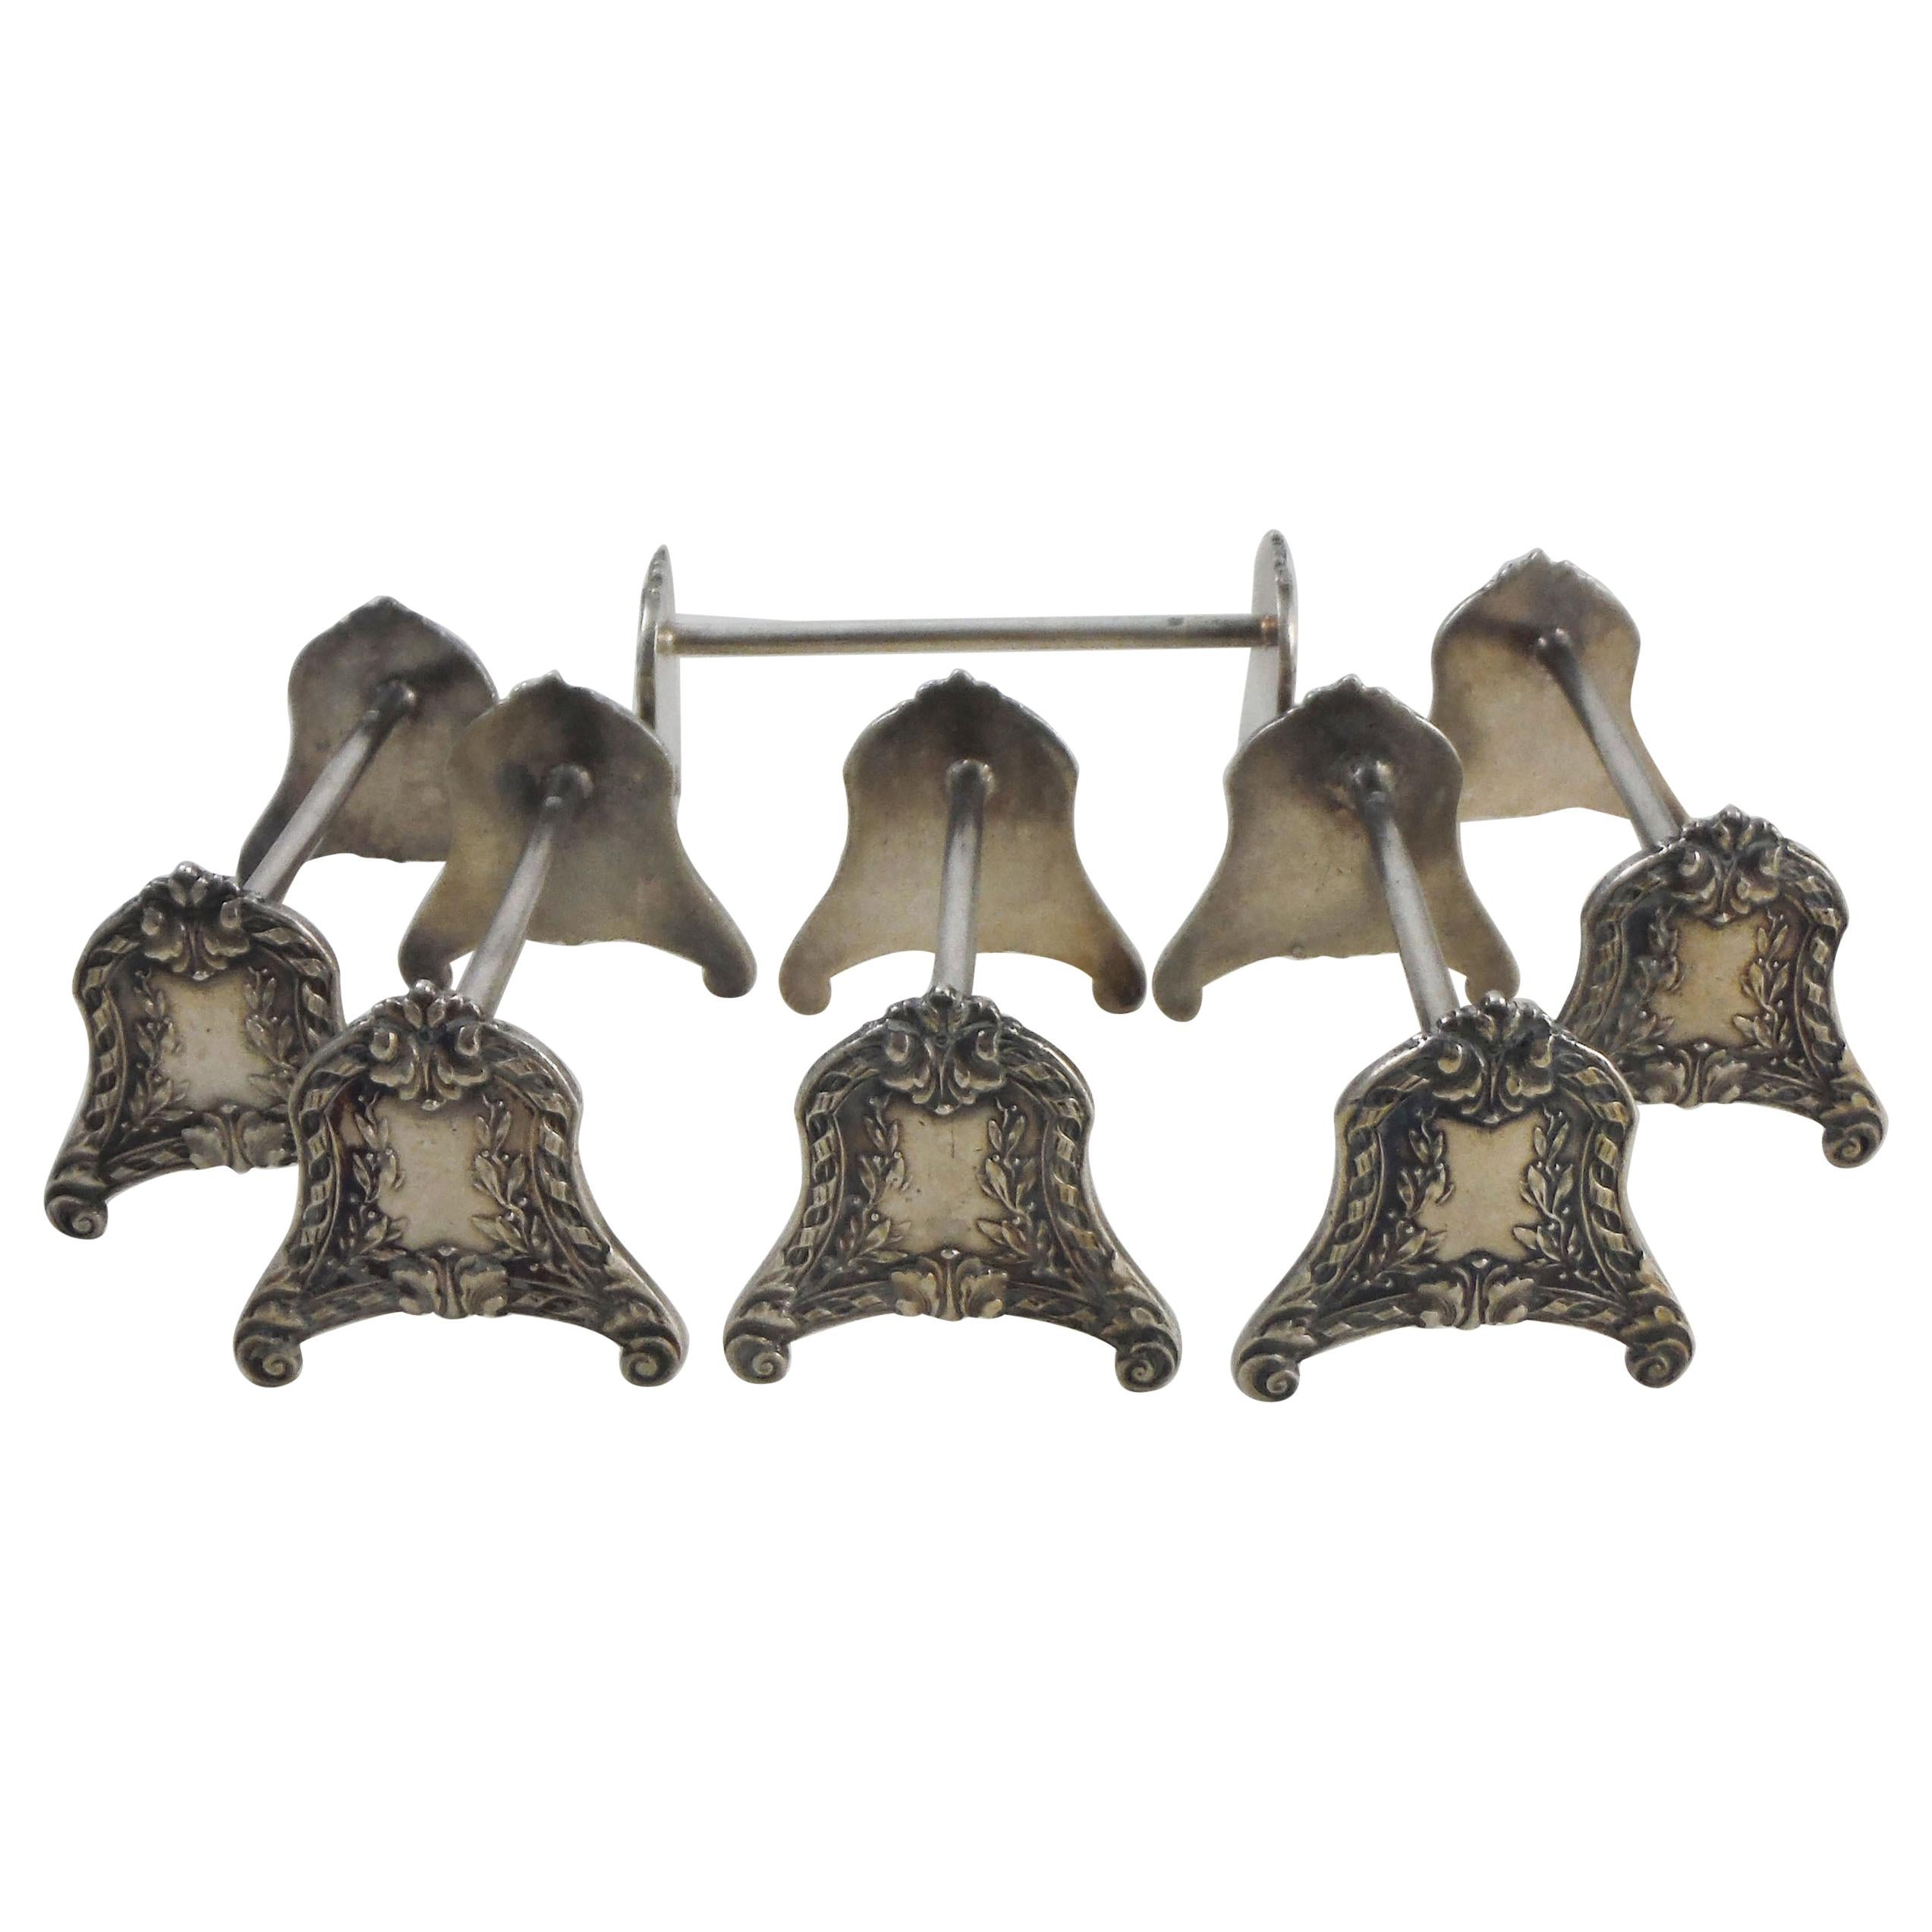 Set of 6 Silver Plate Knife Rests Style Louis XVI, circa 1900